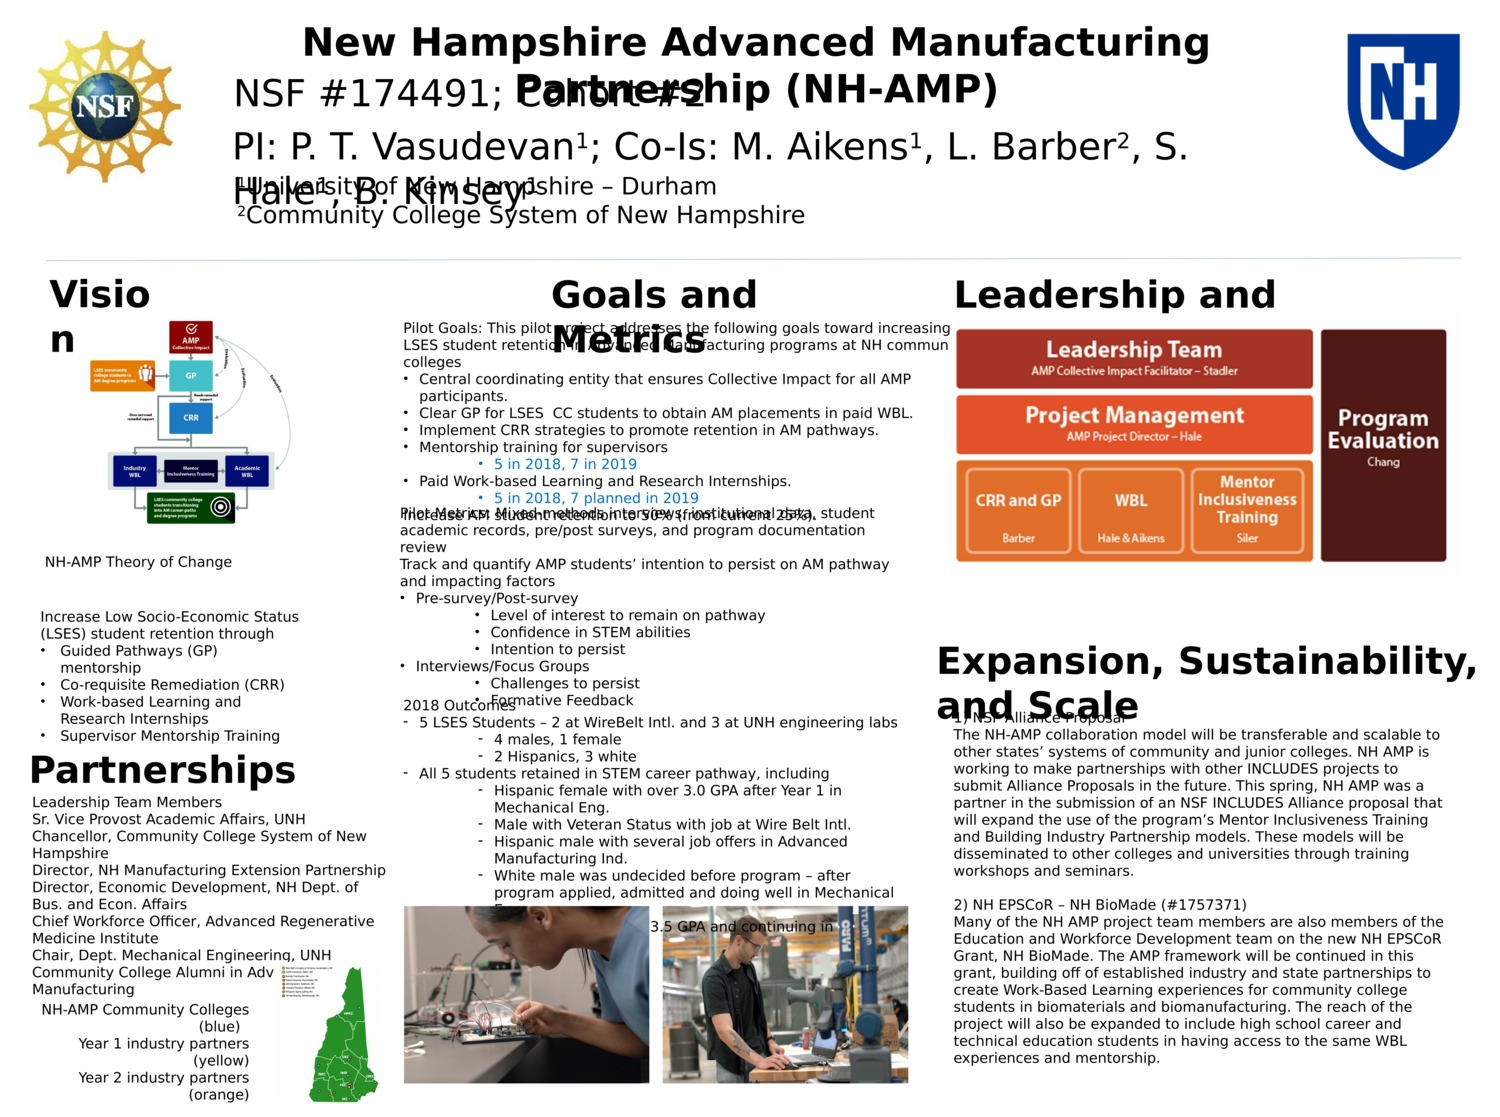 New Hampshire Advanced Manufacturing Partnership  by srhale